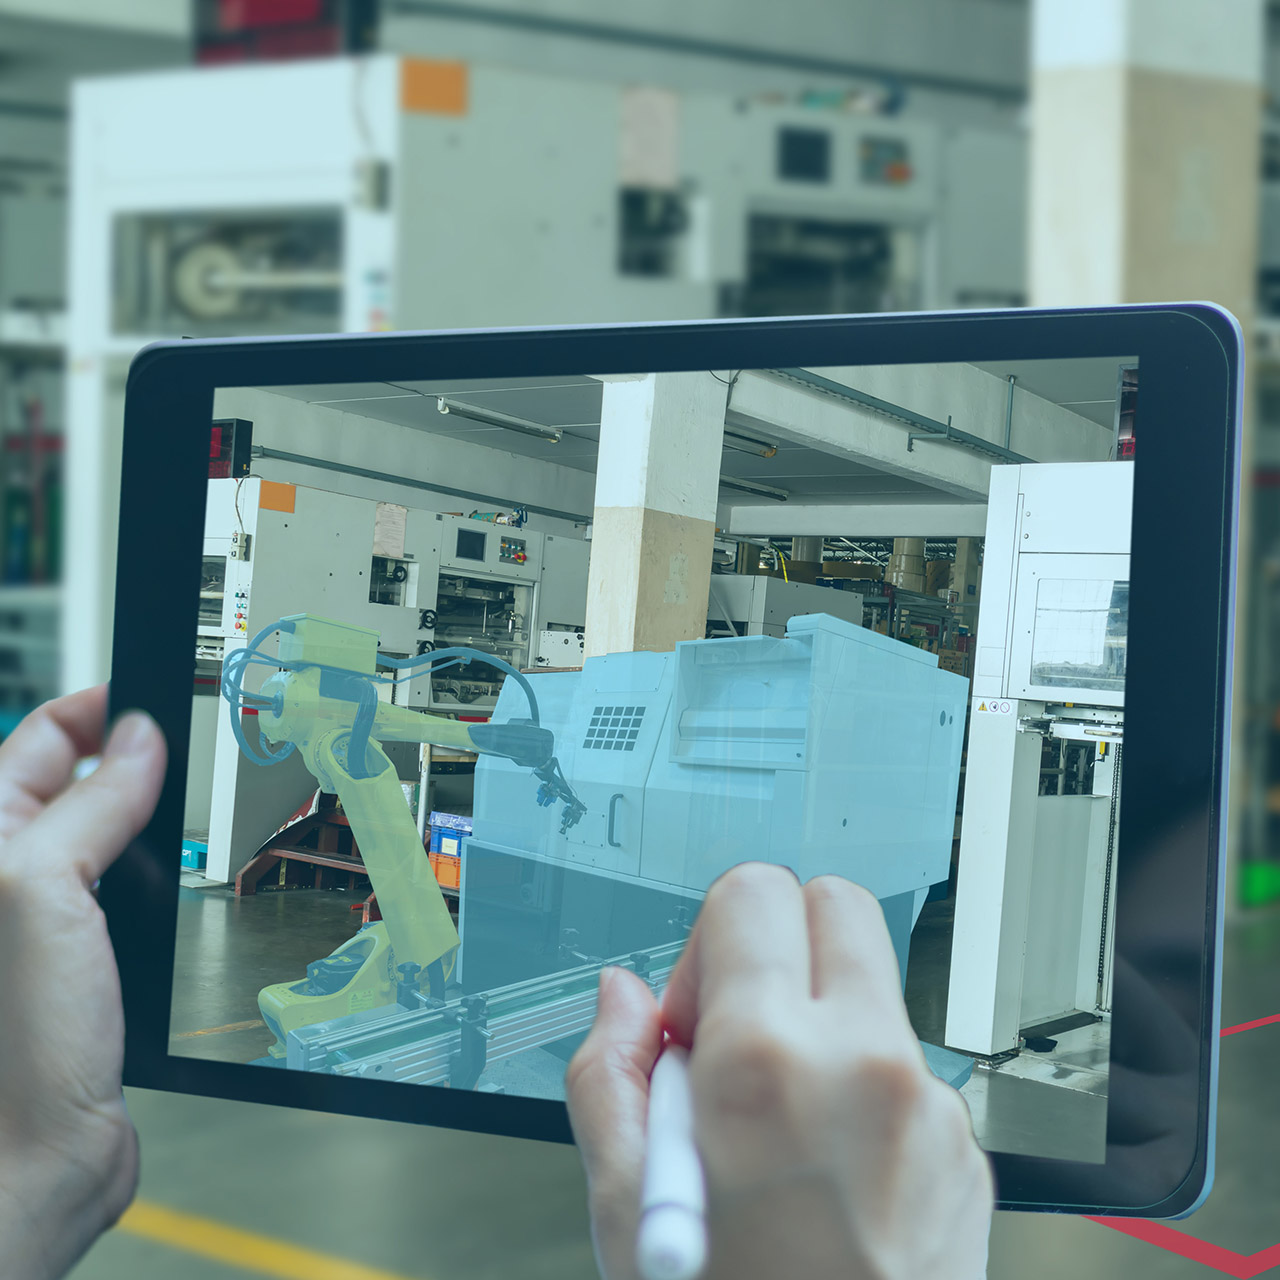 augmented reality device for equipment manufacturers and IoT